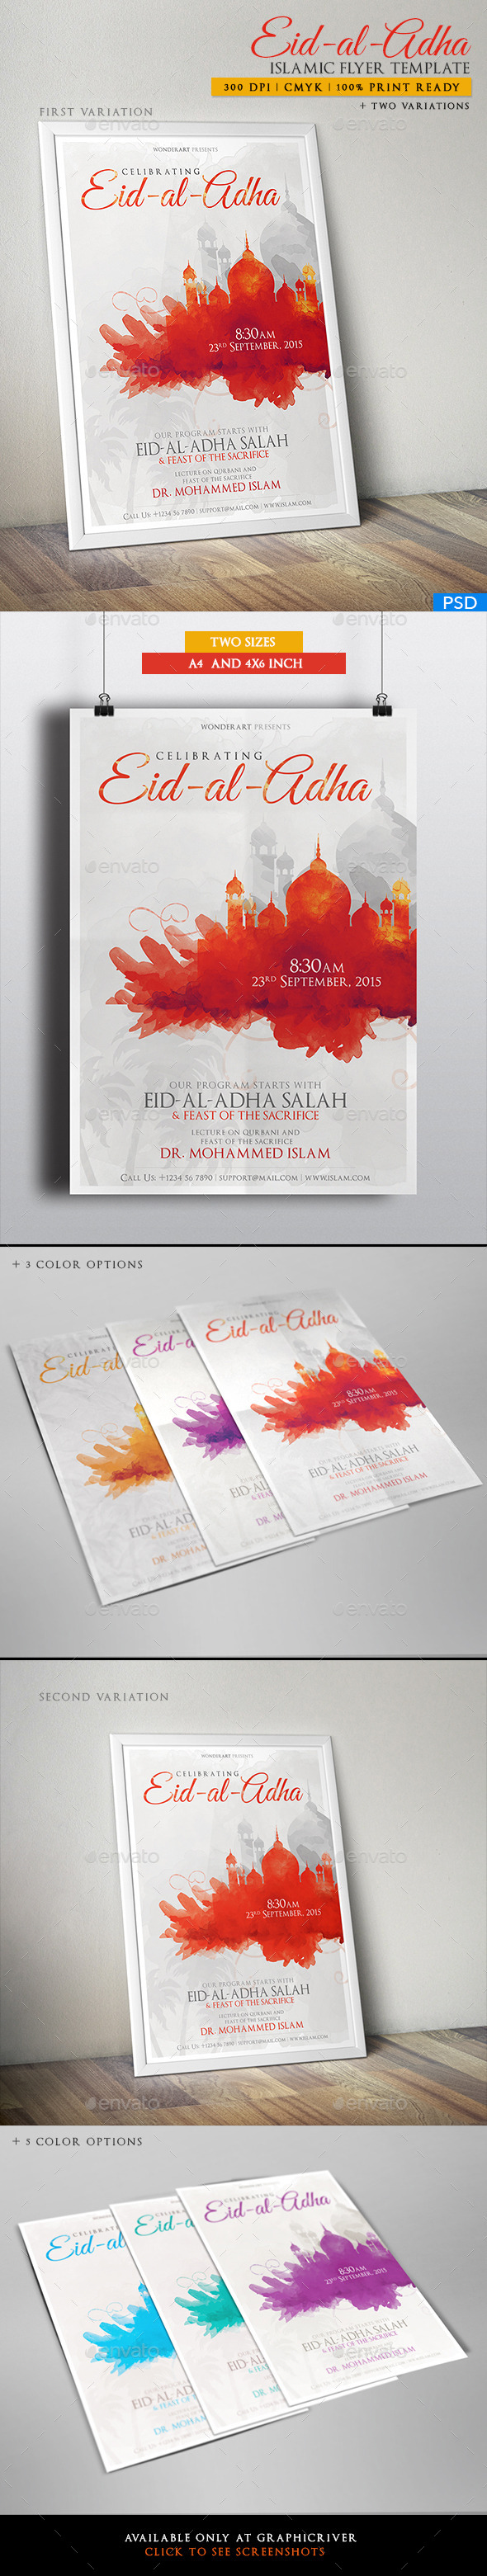 Eid-al-Adha Islamic Celebration Poster/Flyer - Miscellaneous Events